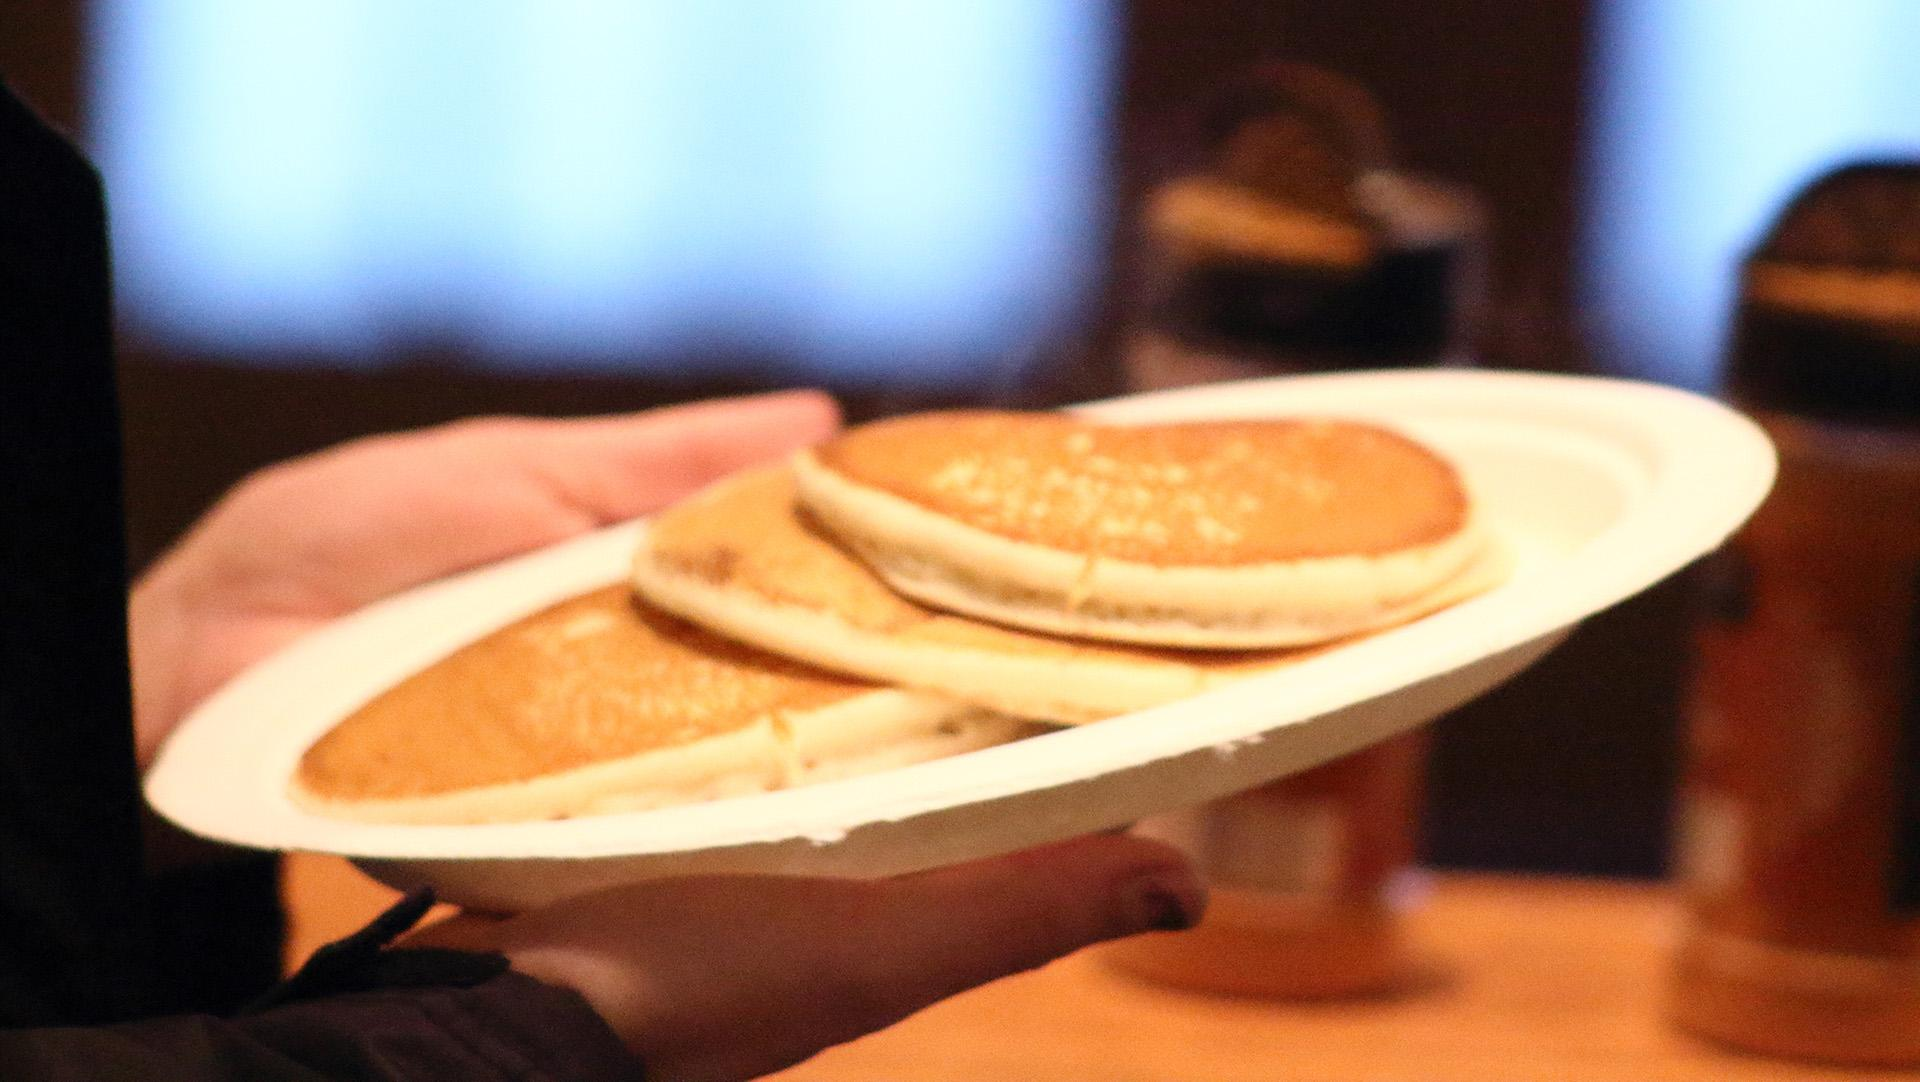 Pancakes made by the Pancake Man for students in the IMU on Monday, Dec. 11, 2017. The event was part of finals week events held to relieve the stress of students. (Ashley Morris/The Daily Iowan)